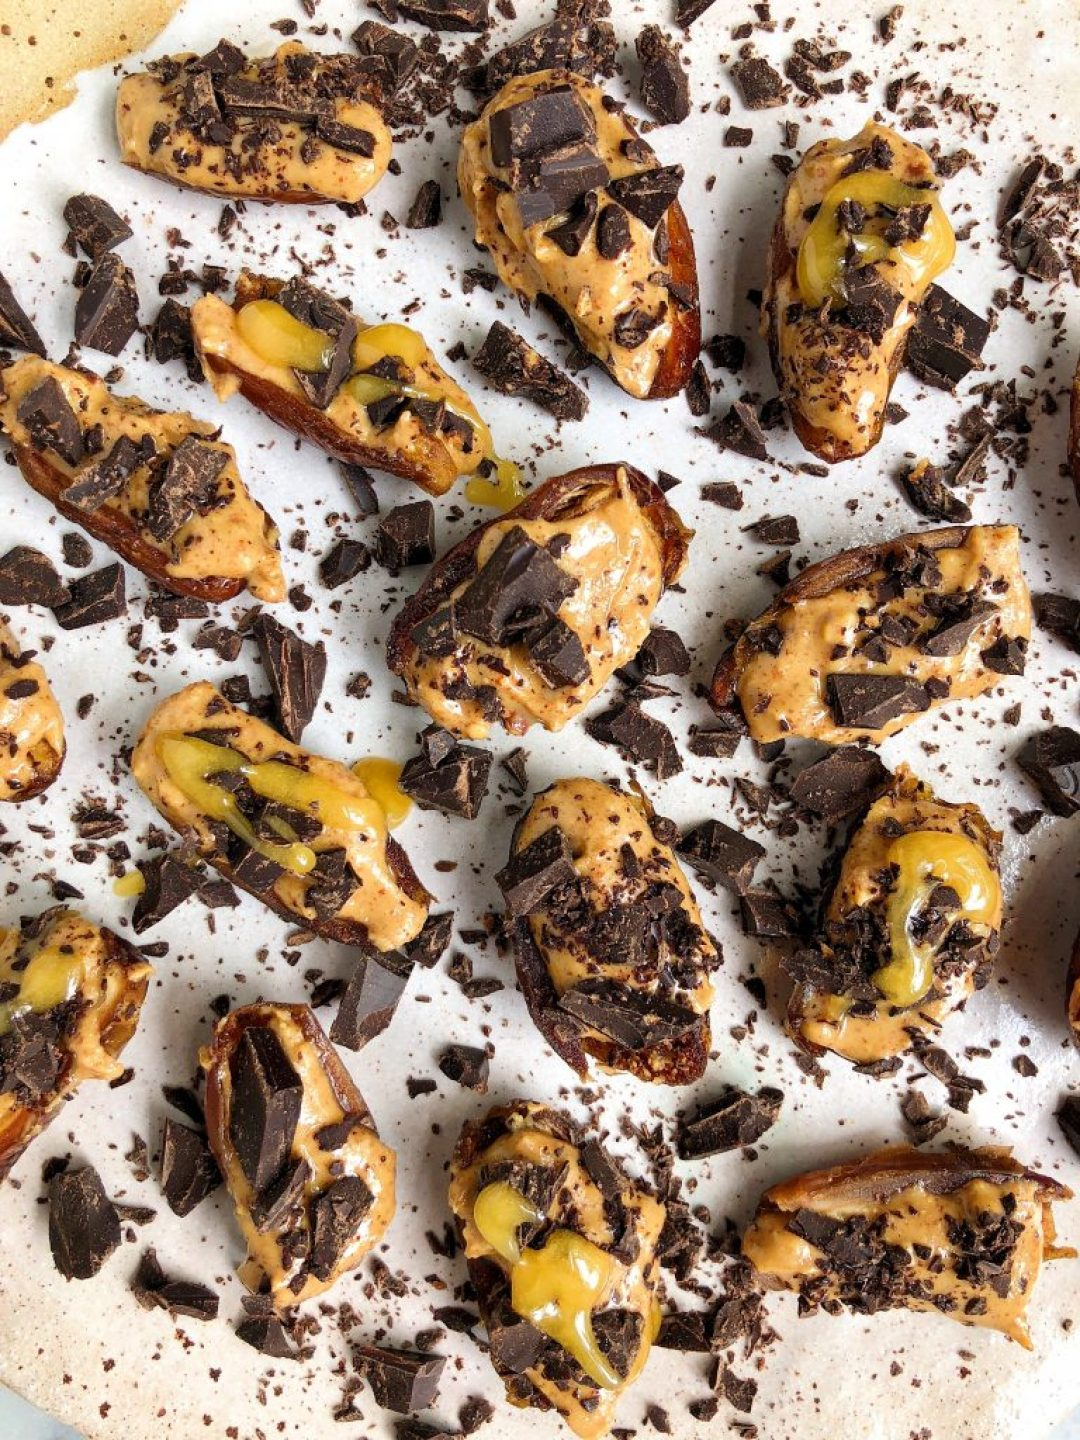 Sharing these Frozen Nut Butter Stuffed Dates that are gluten-free, dairy-free and even have protein in them! One of my favorite sweet snacks to keep on hand.